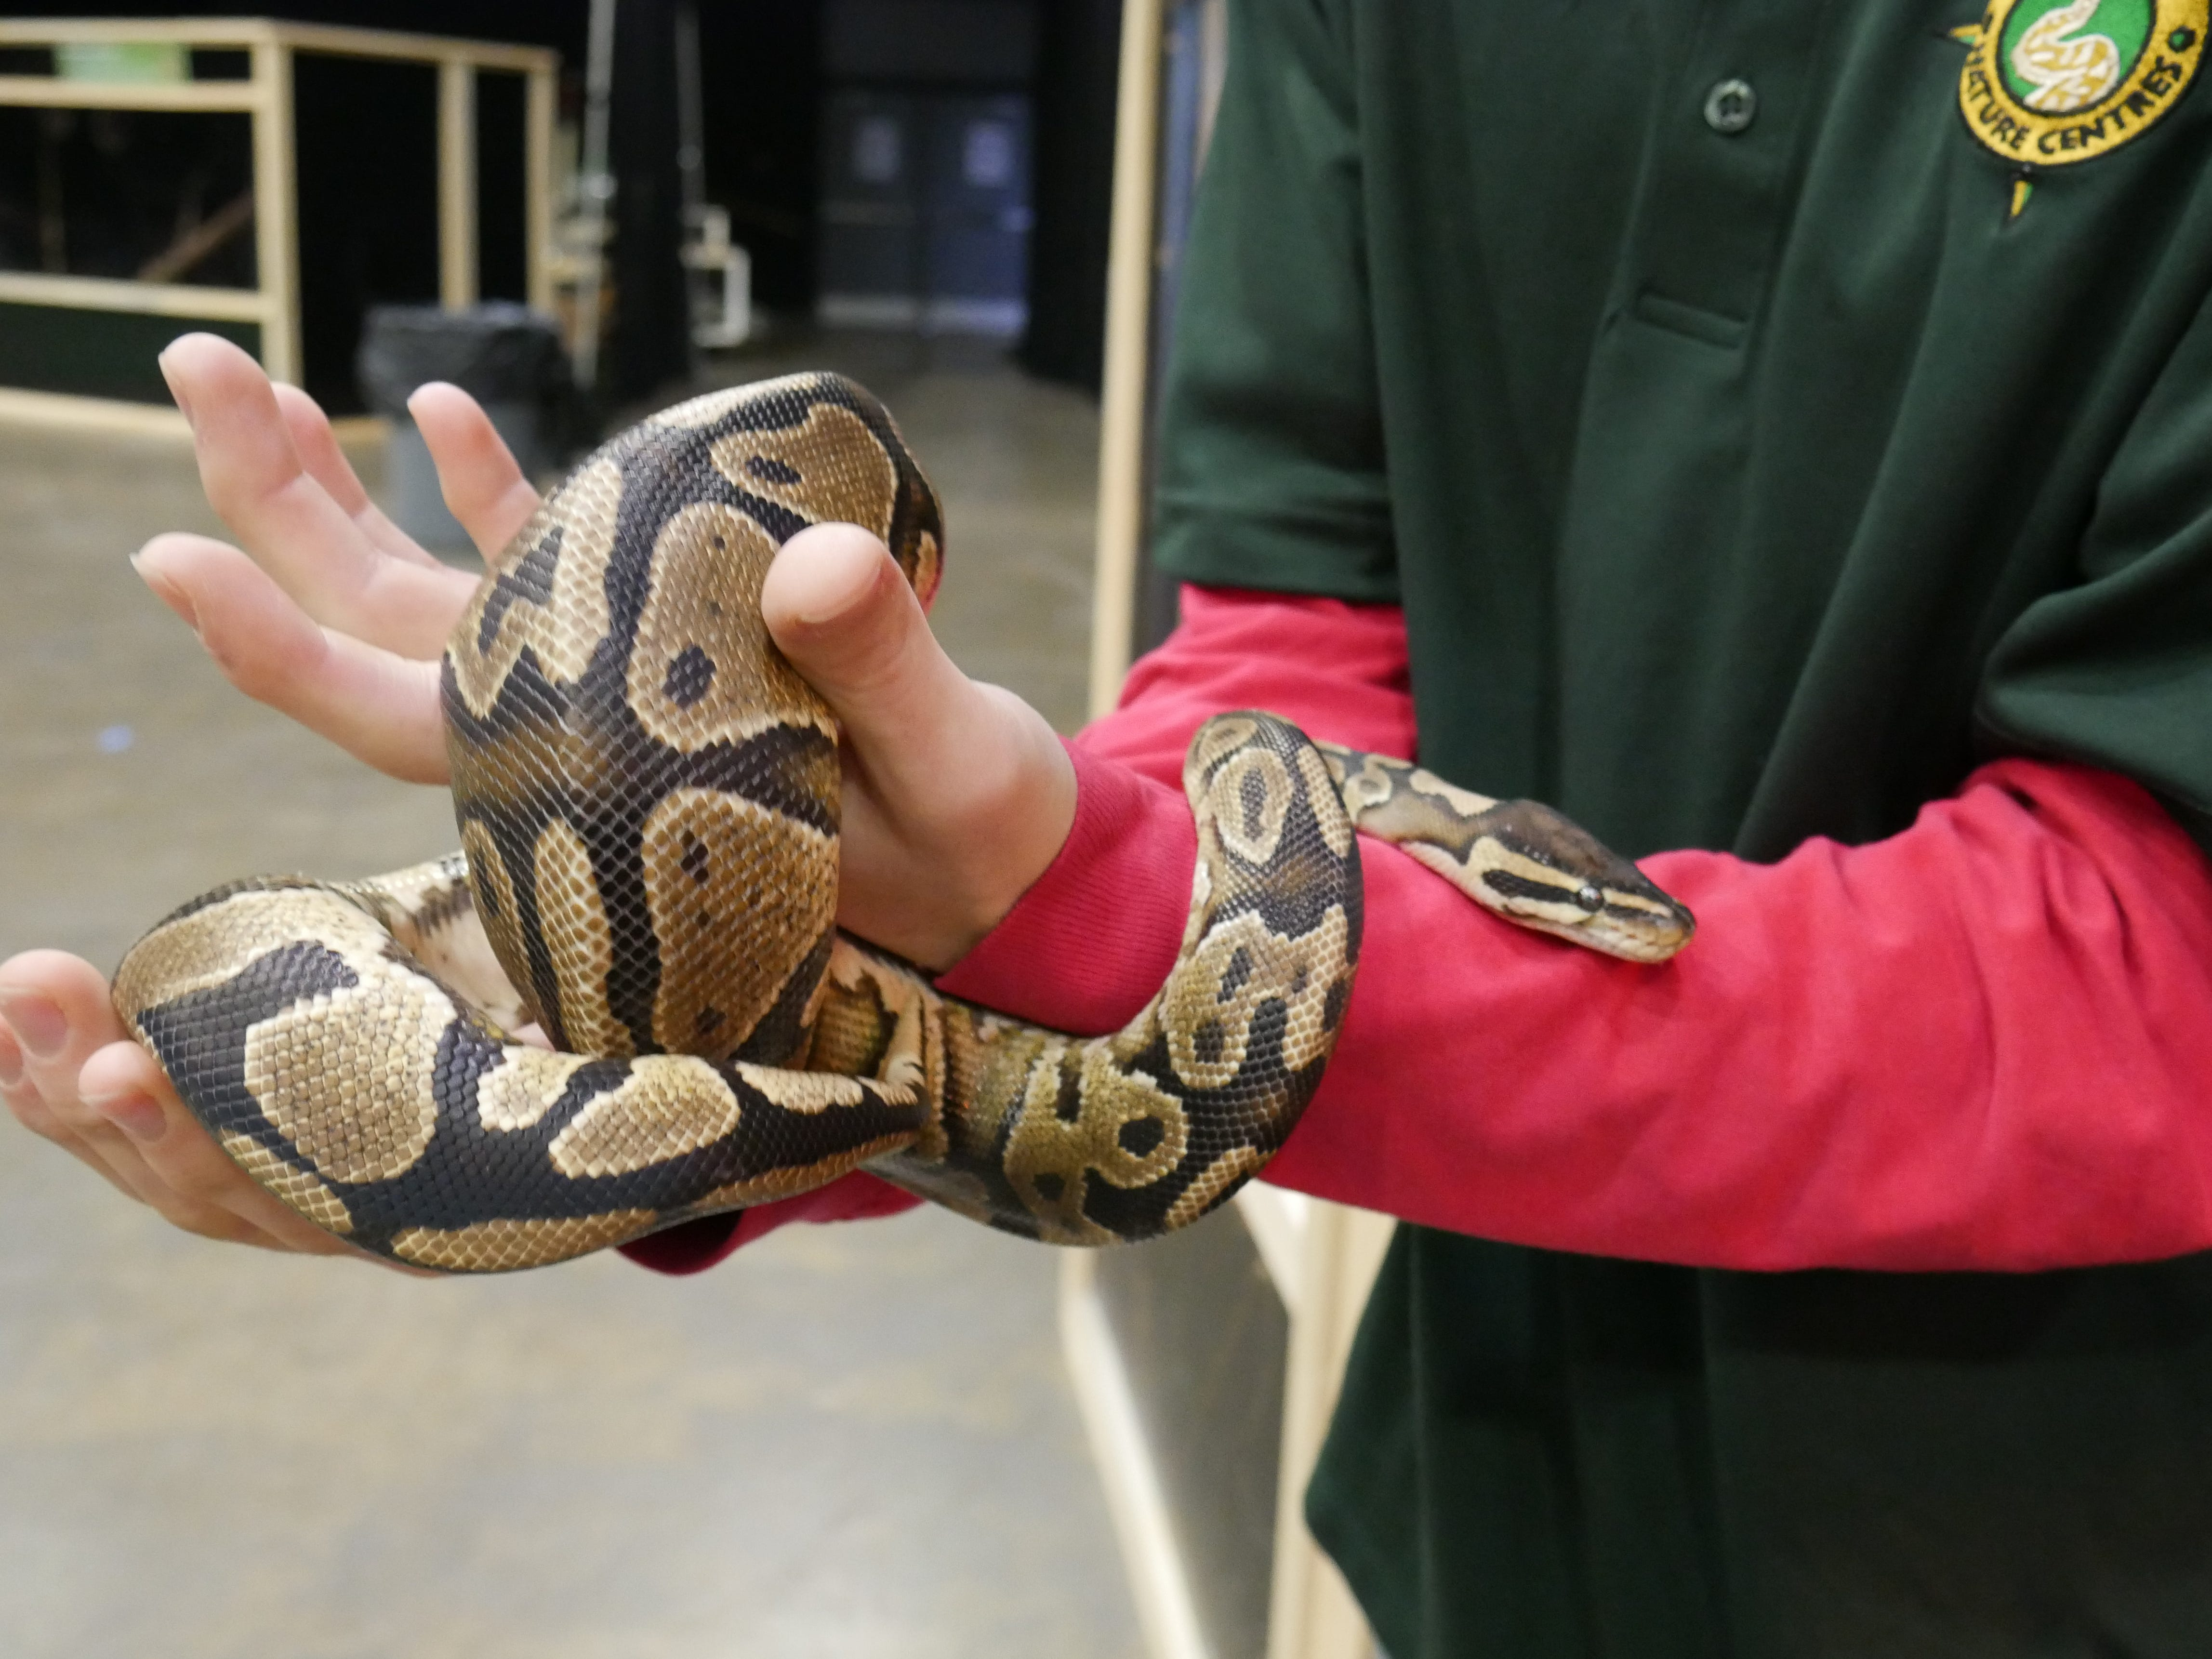 A snake at the Natural History Exhibition on Nov. 17, 2018, at the Mid-Hudson Civic Center in Poughkeepsie. Little Ray's Nature Centers and ZooAmerica coordinated with the Foundation for Animal Rescue and Education for the weekend-long exhibit, which also features a sloth, a porcupine, an armadillo, rabbits, tarantulas and more.